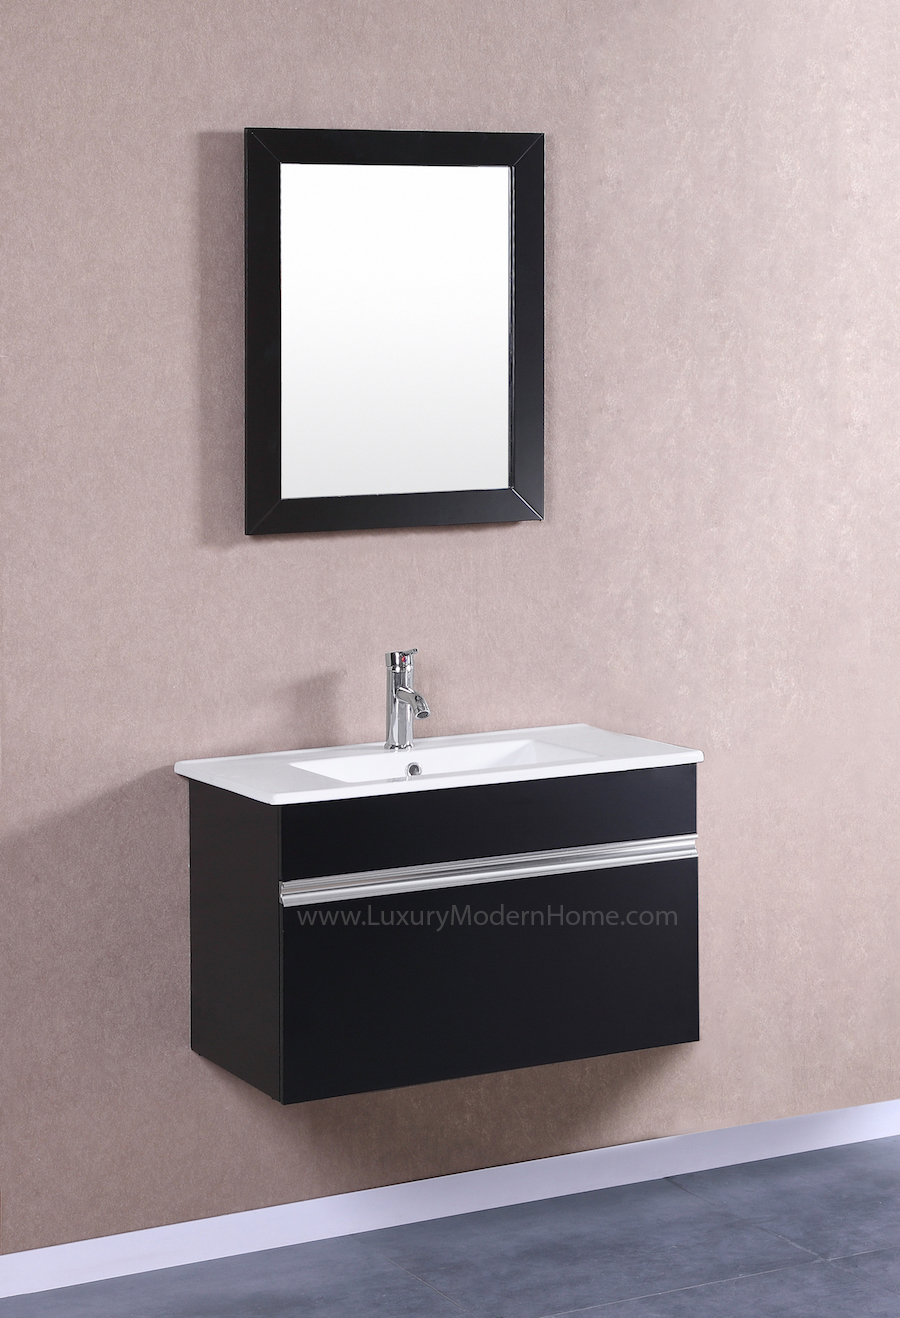 PETRONIUS 30 Black Vanity Sink